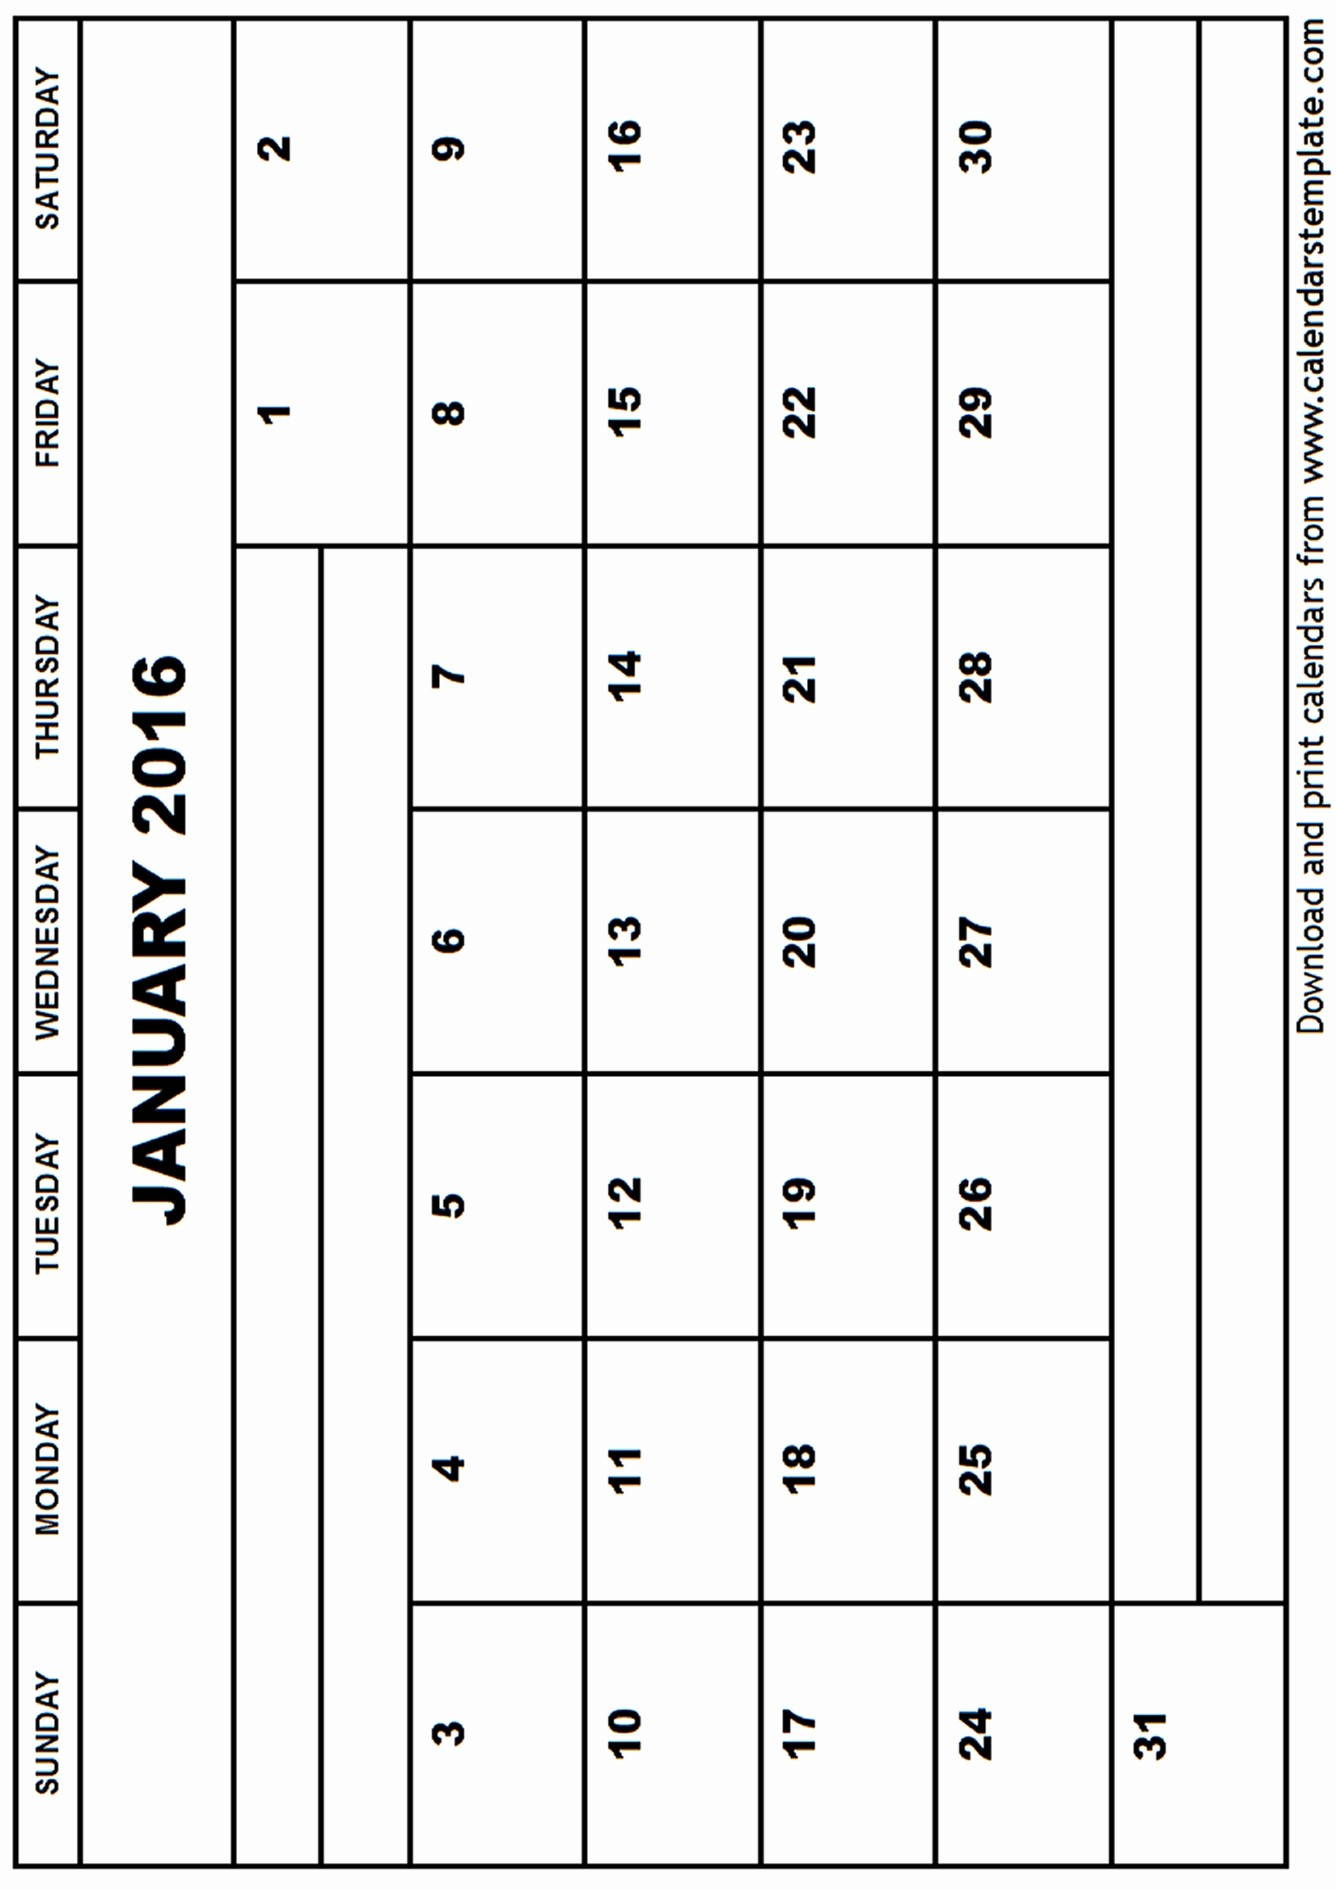 Free Printable Calendar 2016 Template Awesome January 2016 Calendar Template